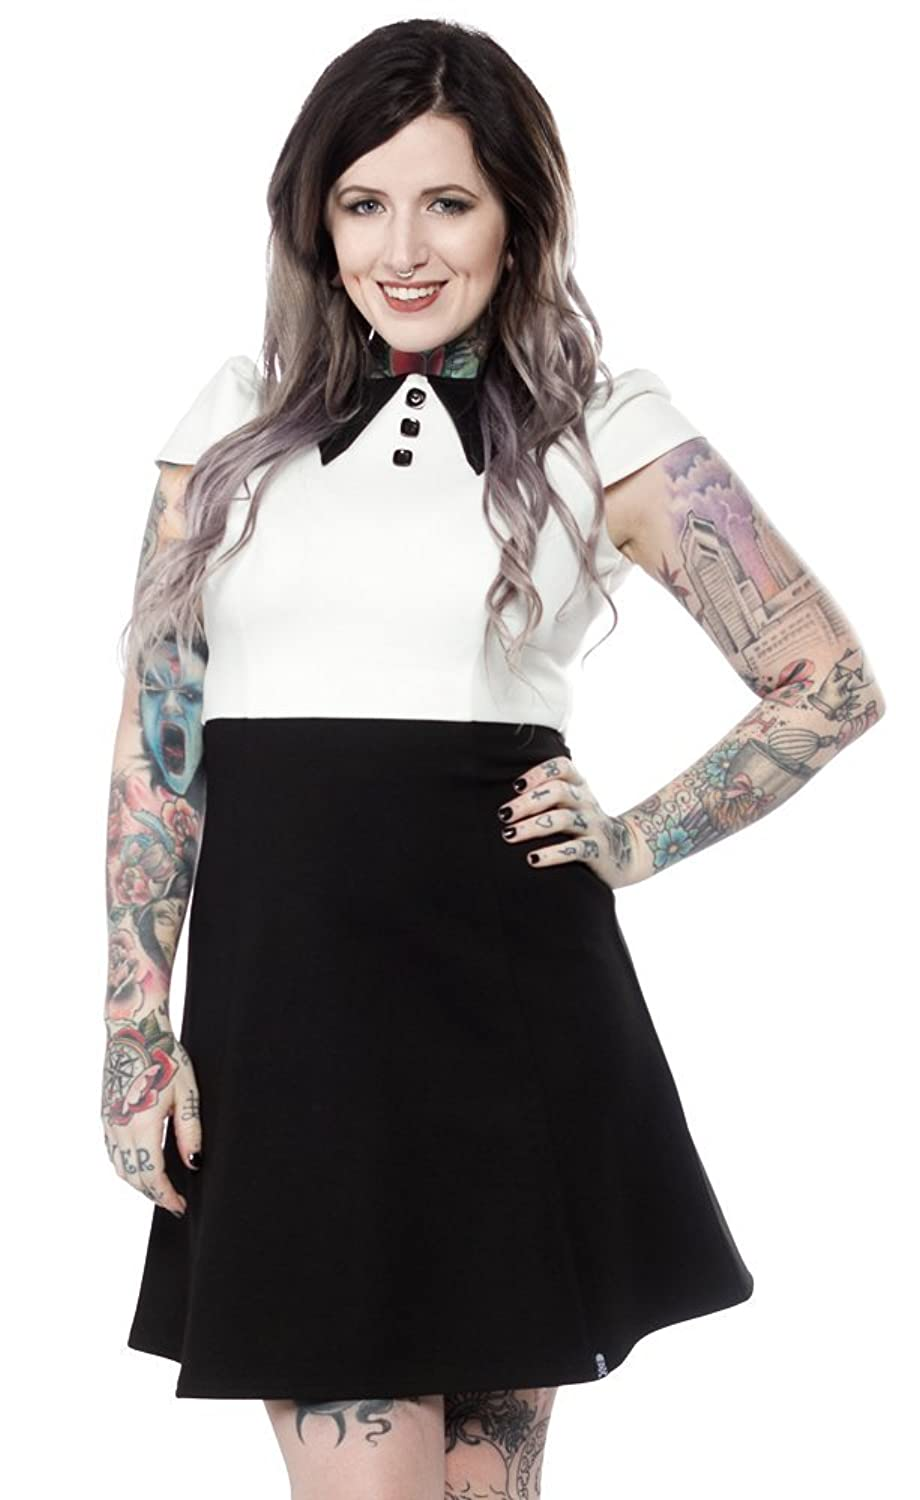 Vintage Retro Halloween Themed Clothing Sourpuss Roundabout Dress Black/White $56.99 AT vintagedancer.com